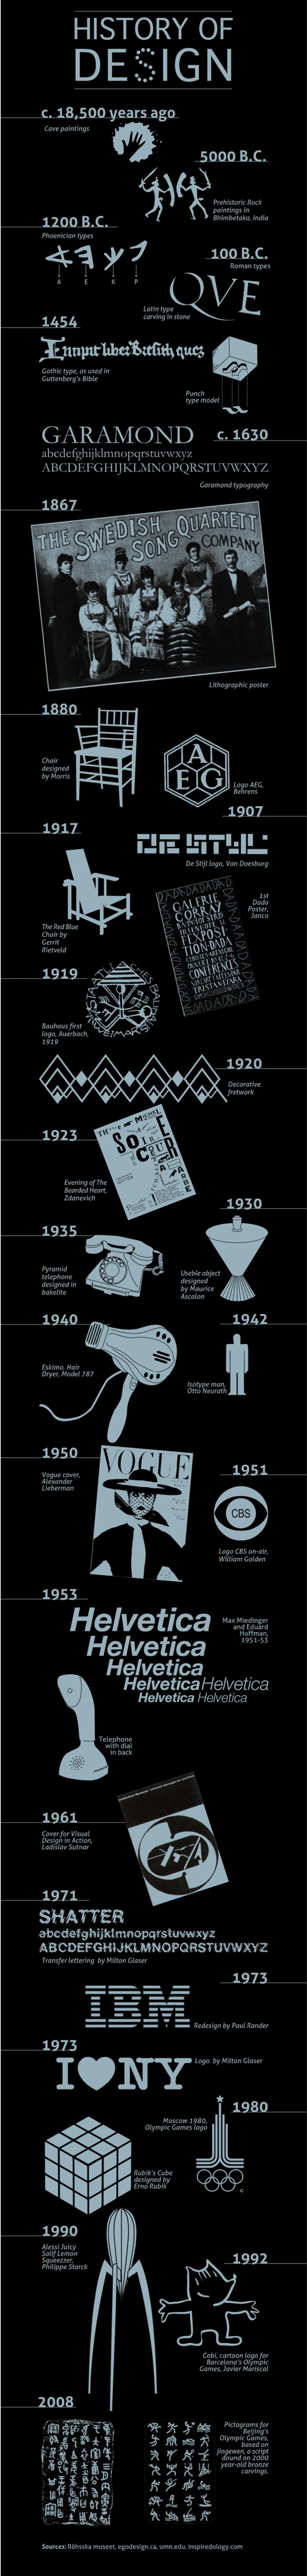 History of Design  Infographic